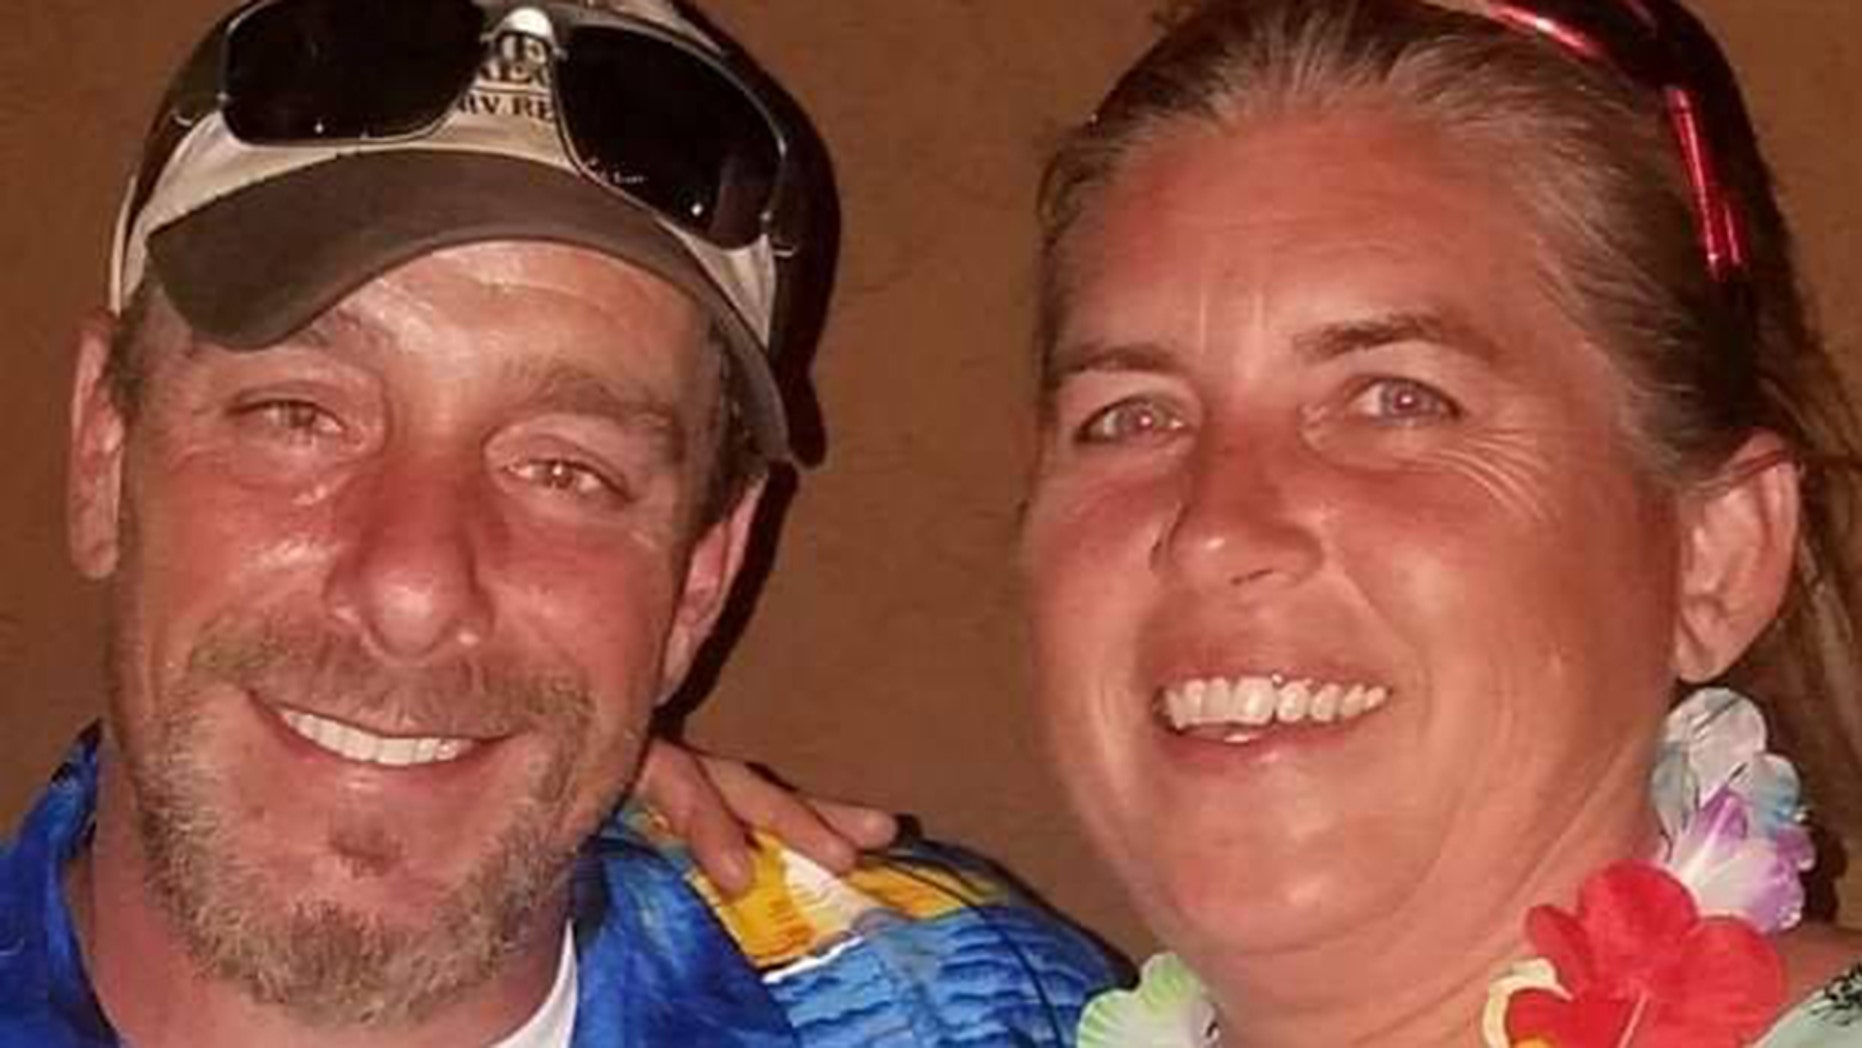 The bodies of James and Michelle Butler, of Rumney, N.H., were found this week in a shallow grave on Padre Island in Texas, deputies said.